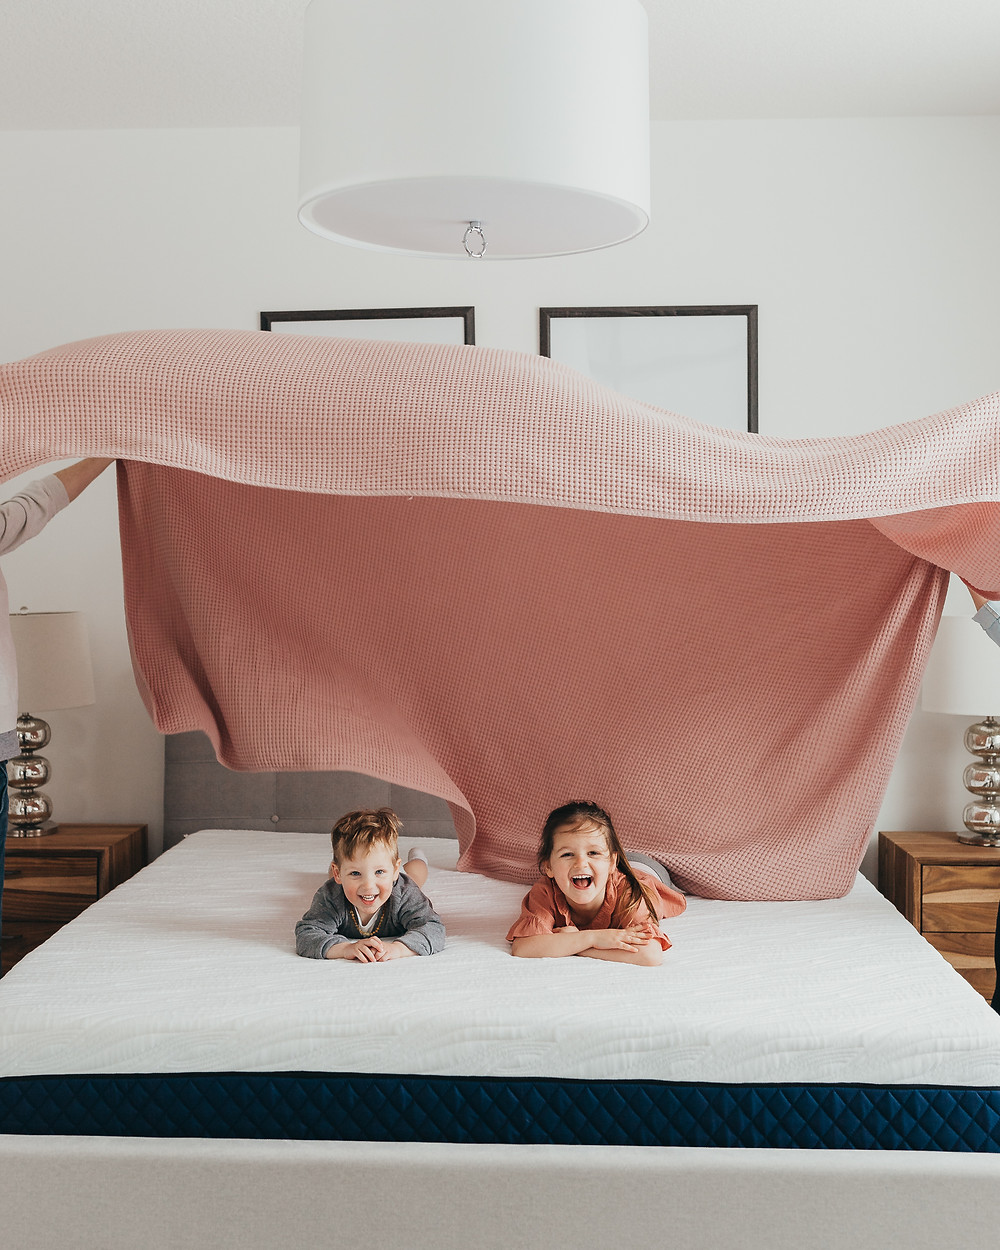 A little girl and boy playing on the bed as a pink sheet is fanned above them.